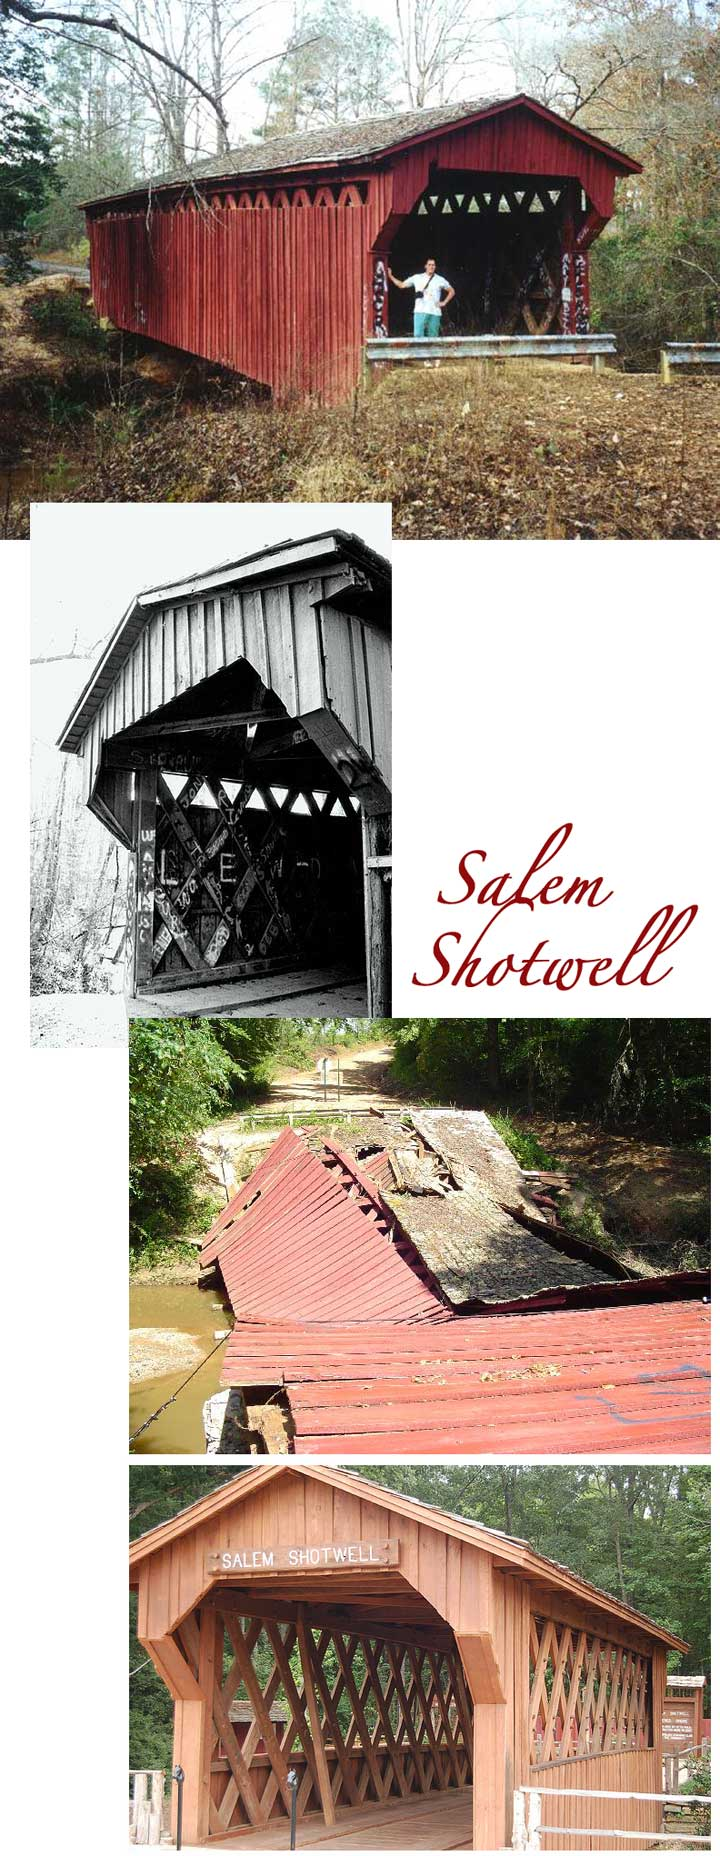 salem shotwell